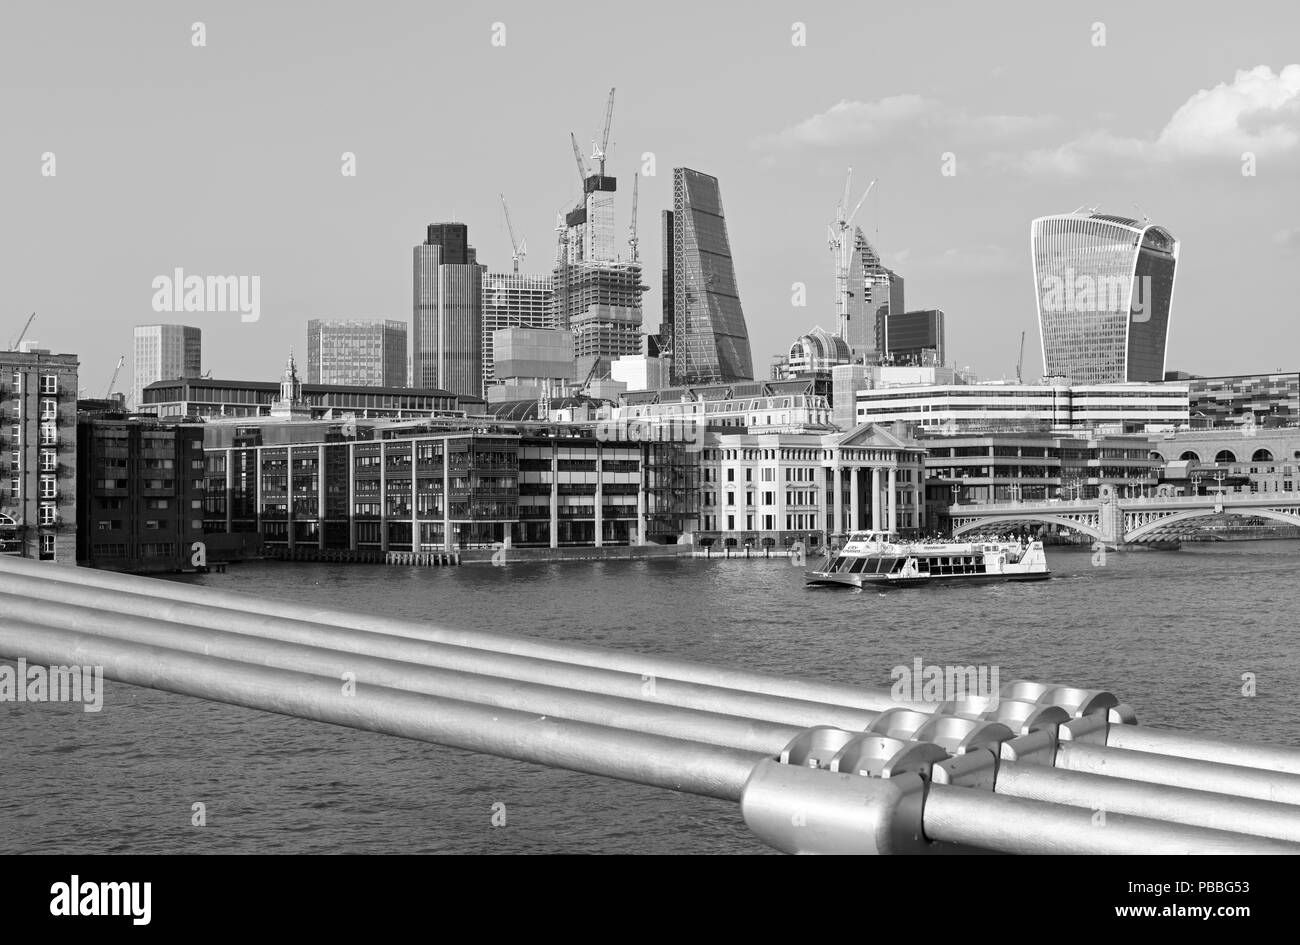 Views along the river Thames and the London city business district on a sunny April evening - Stock Image